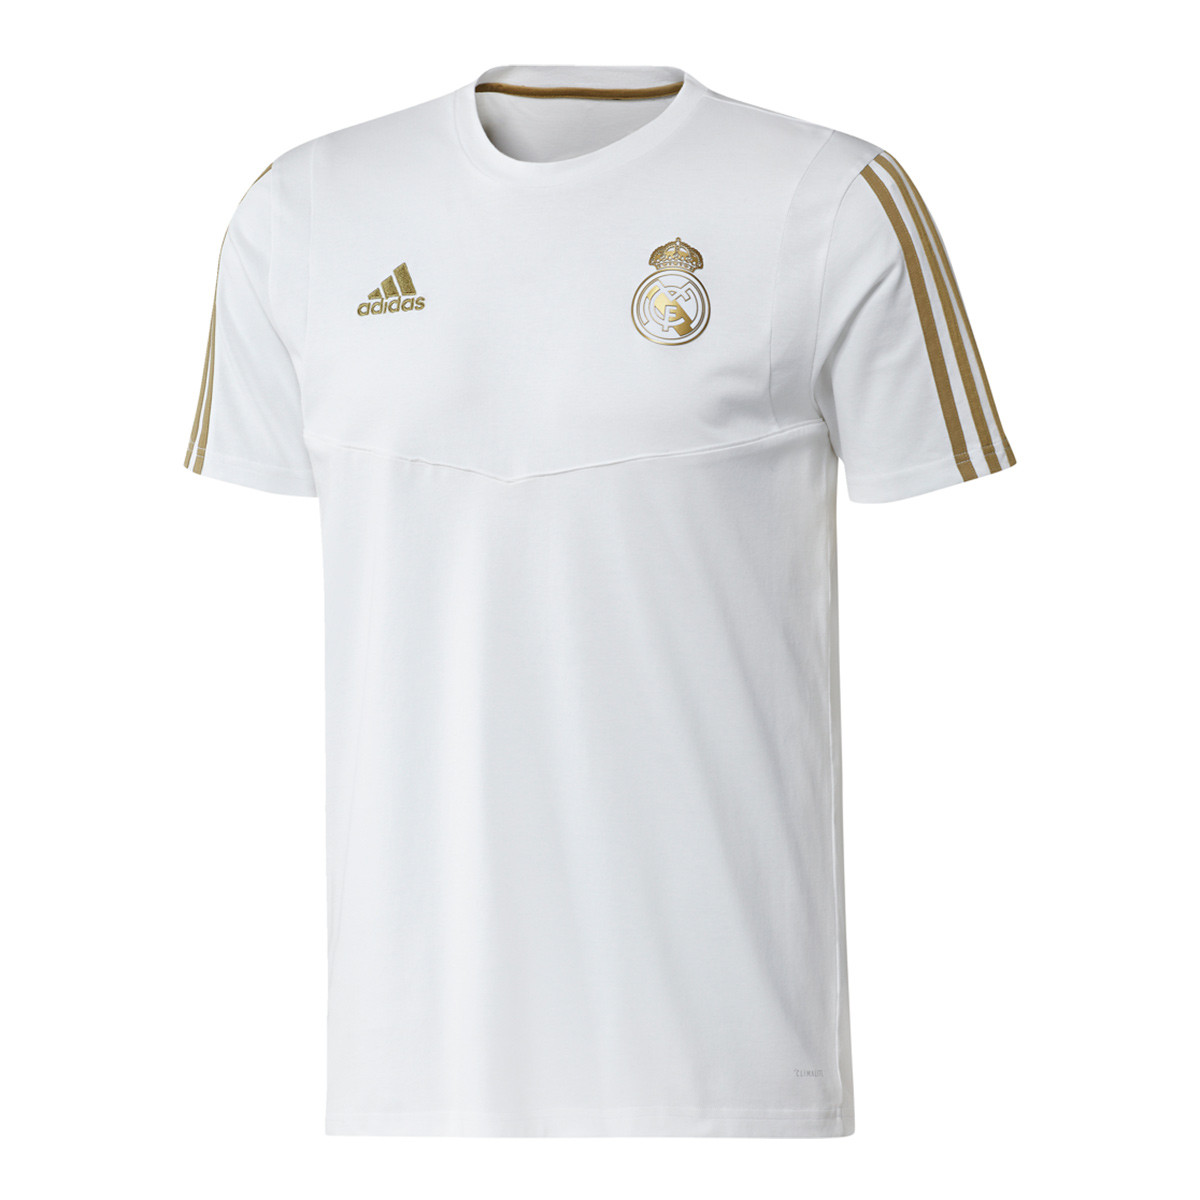 new product a9426 0f107 Camiseta Real Madrid 2019-2020 White-Dark football gold